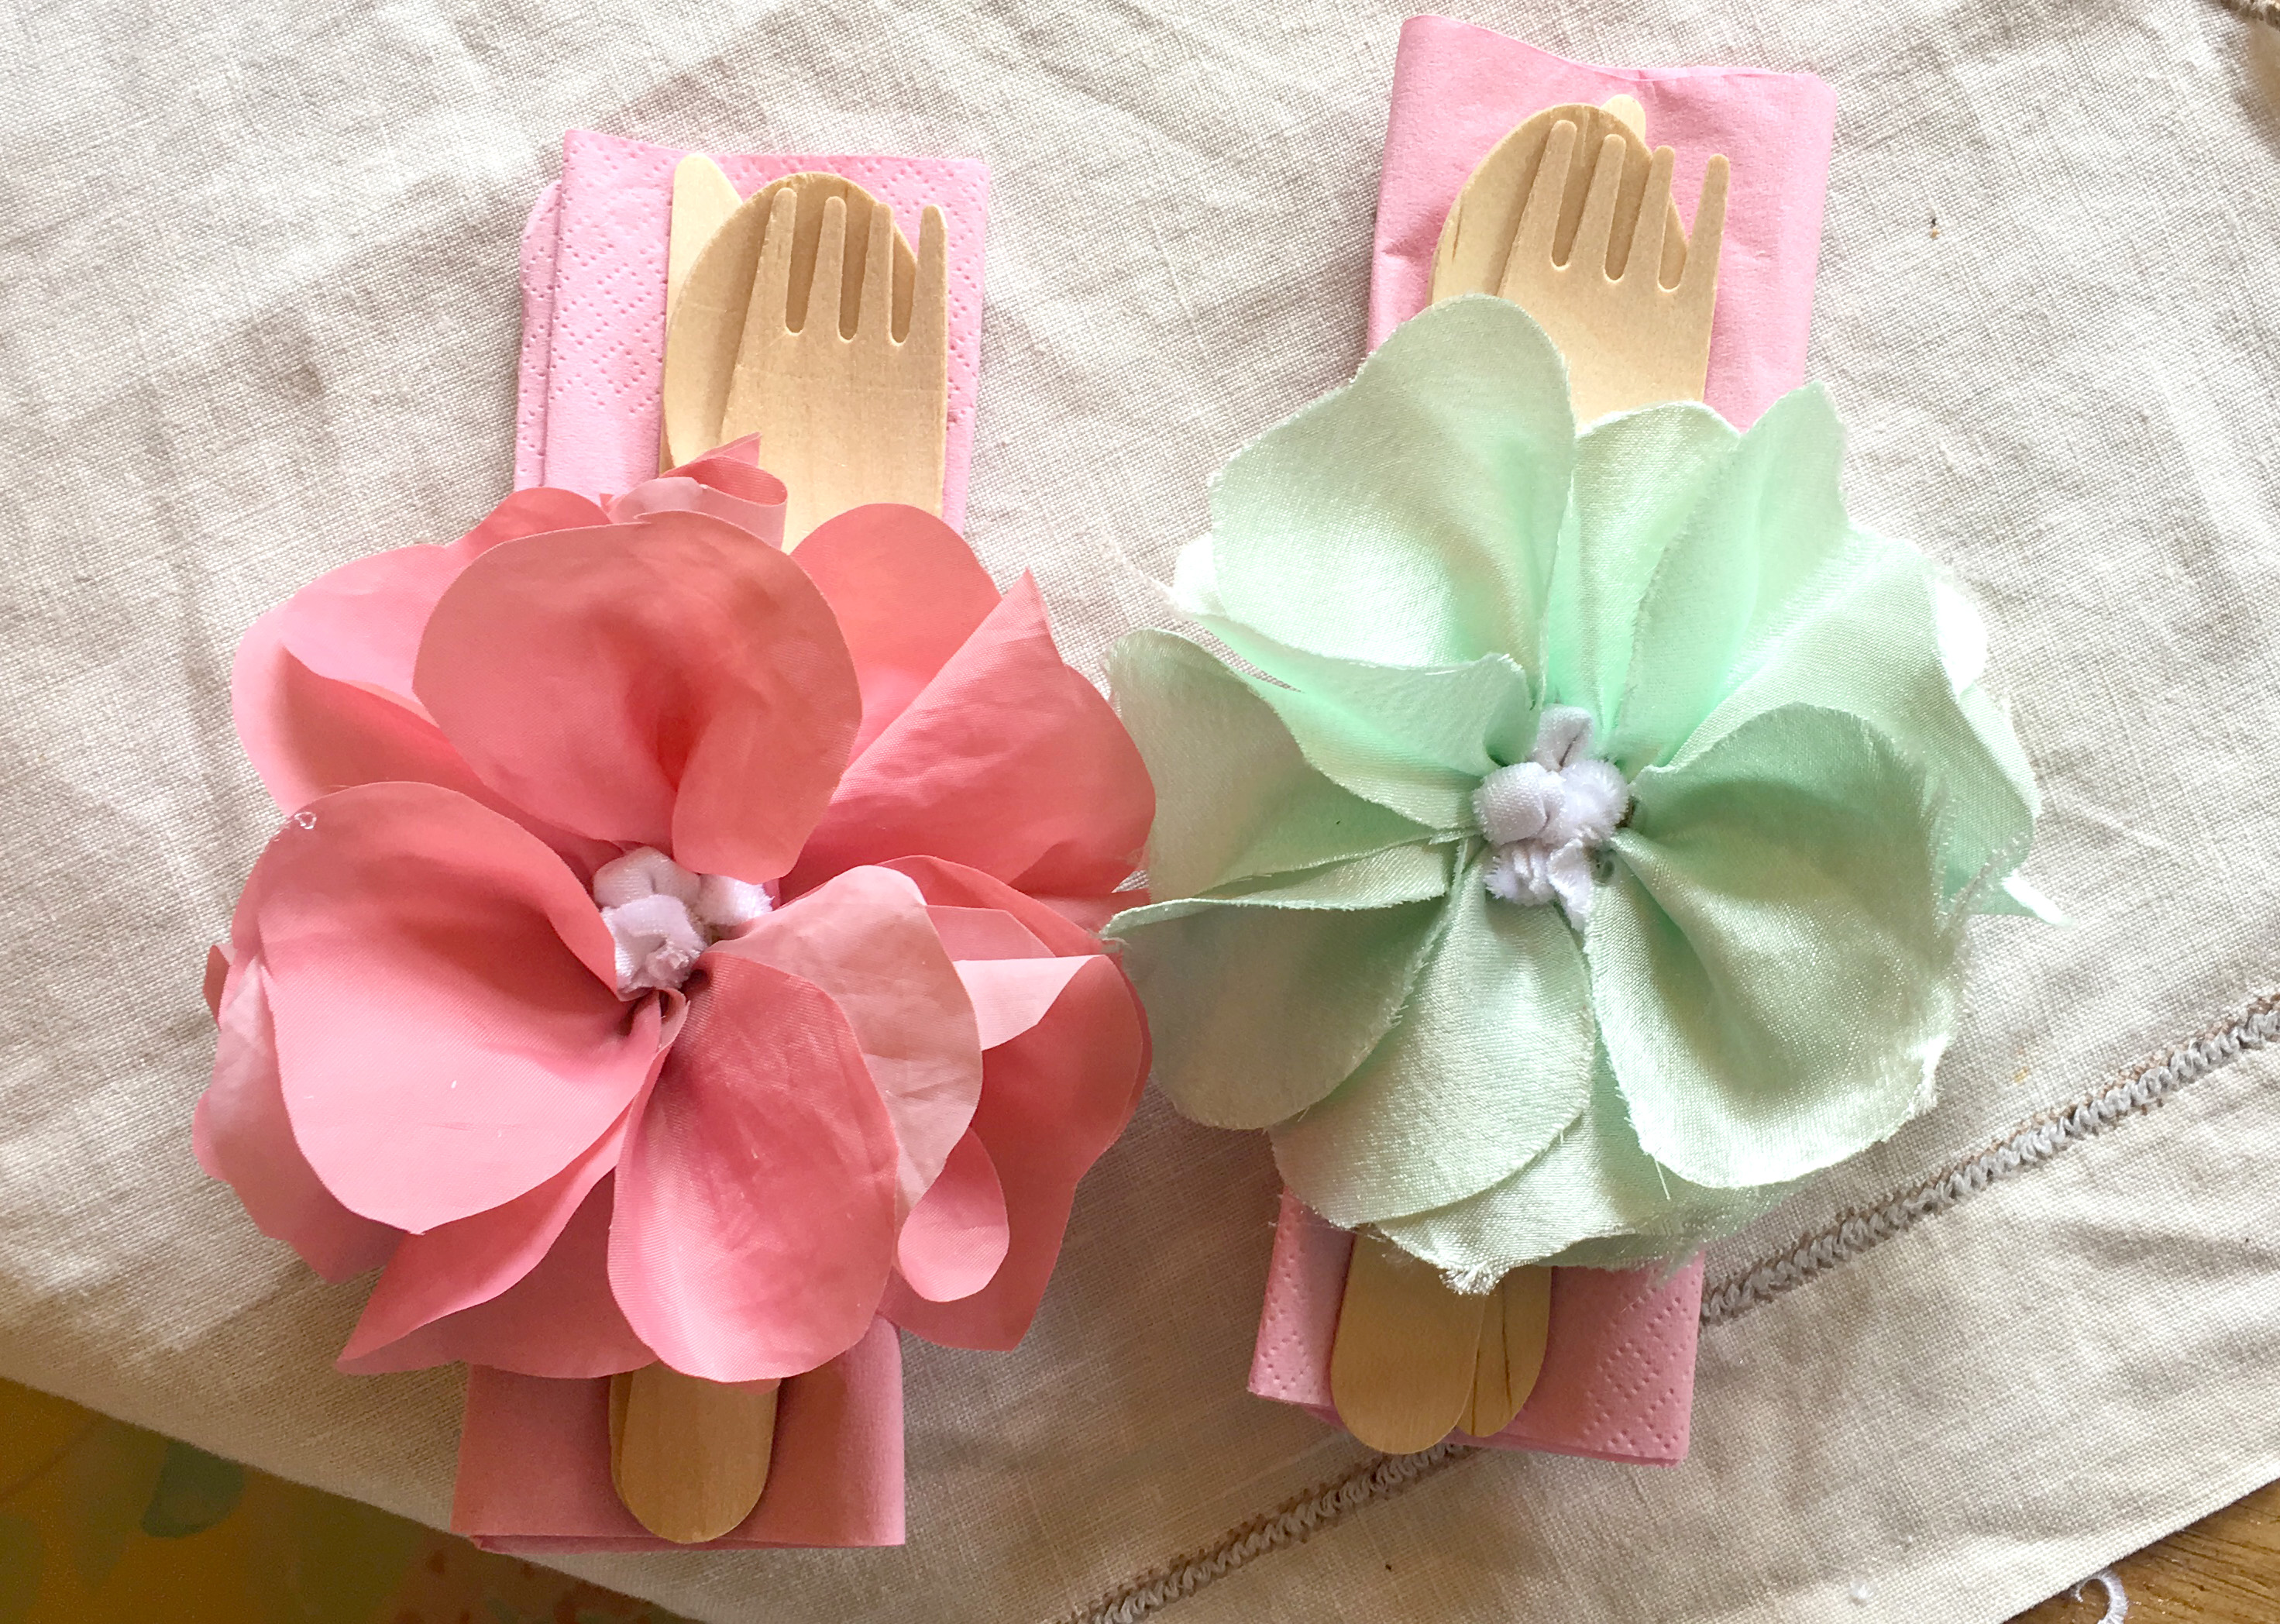 Rag Rug Napkin rings with cute rag rug flowers in pink and blue for a picnic